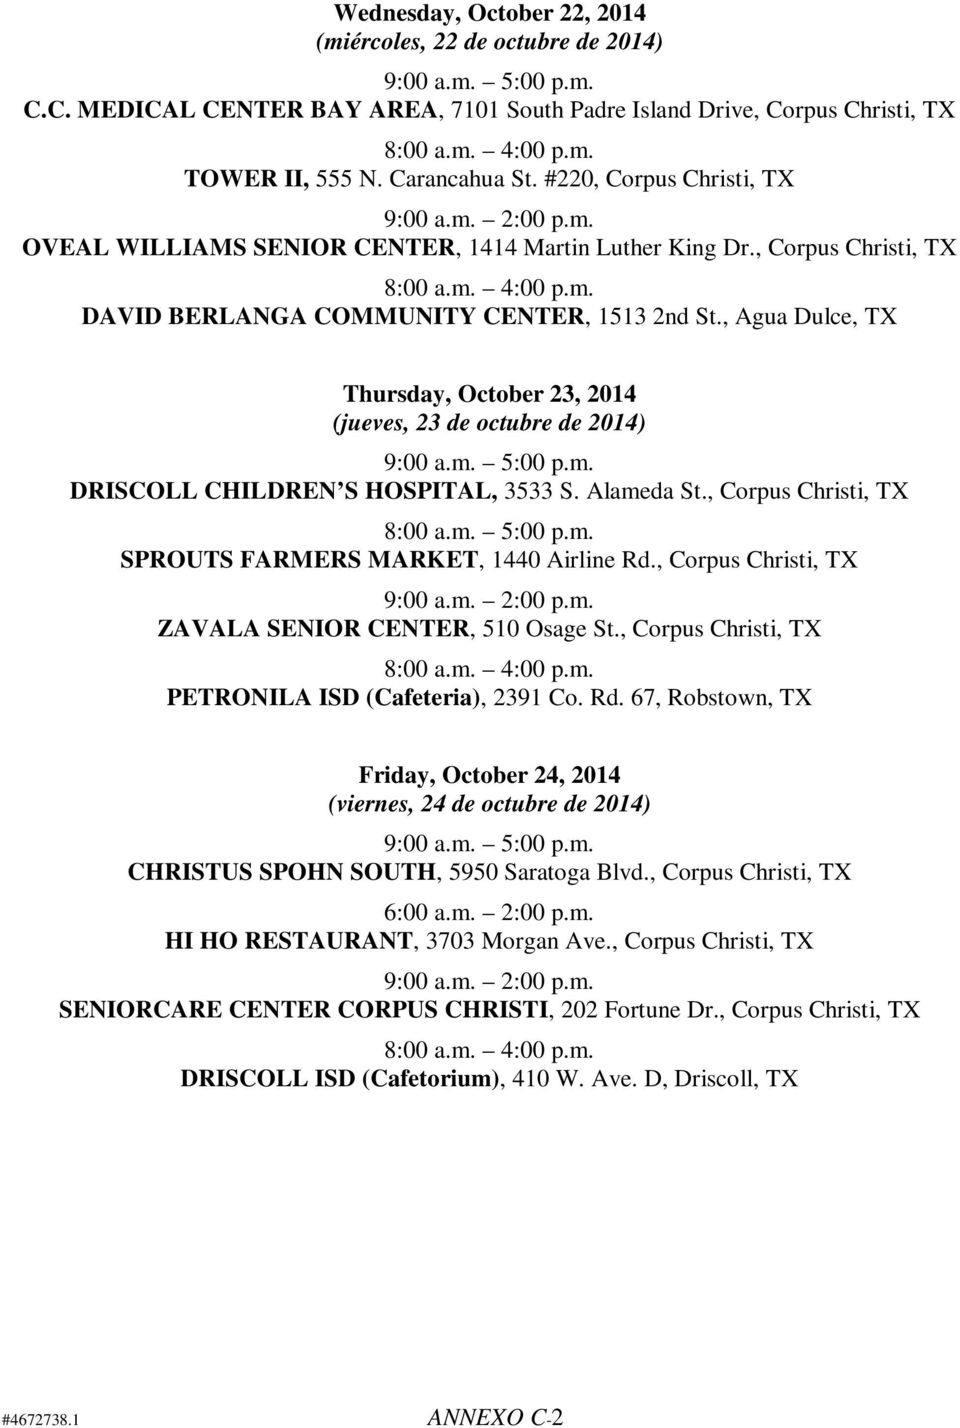 , Agua Dulce, TX Thursday, October 23, 2014 (jueves, 23 de octubre de 2014) 9:00 a.m. 5:00 p.m. DRISCOLL CHILDREN S HOSPITAL, 3533 S. Alameda St., Corpus Christi, TX 8:00 a.m. 5:00 p.m. SPROUTS FARMERS MARKET, 1440 Airline Rd.